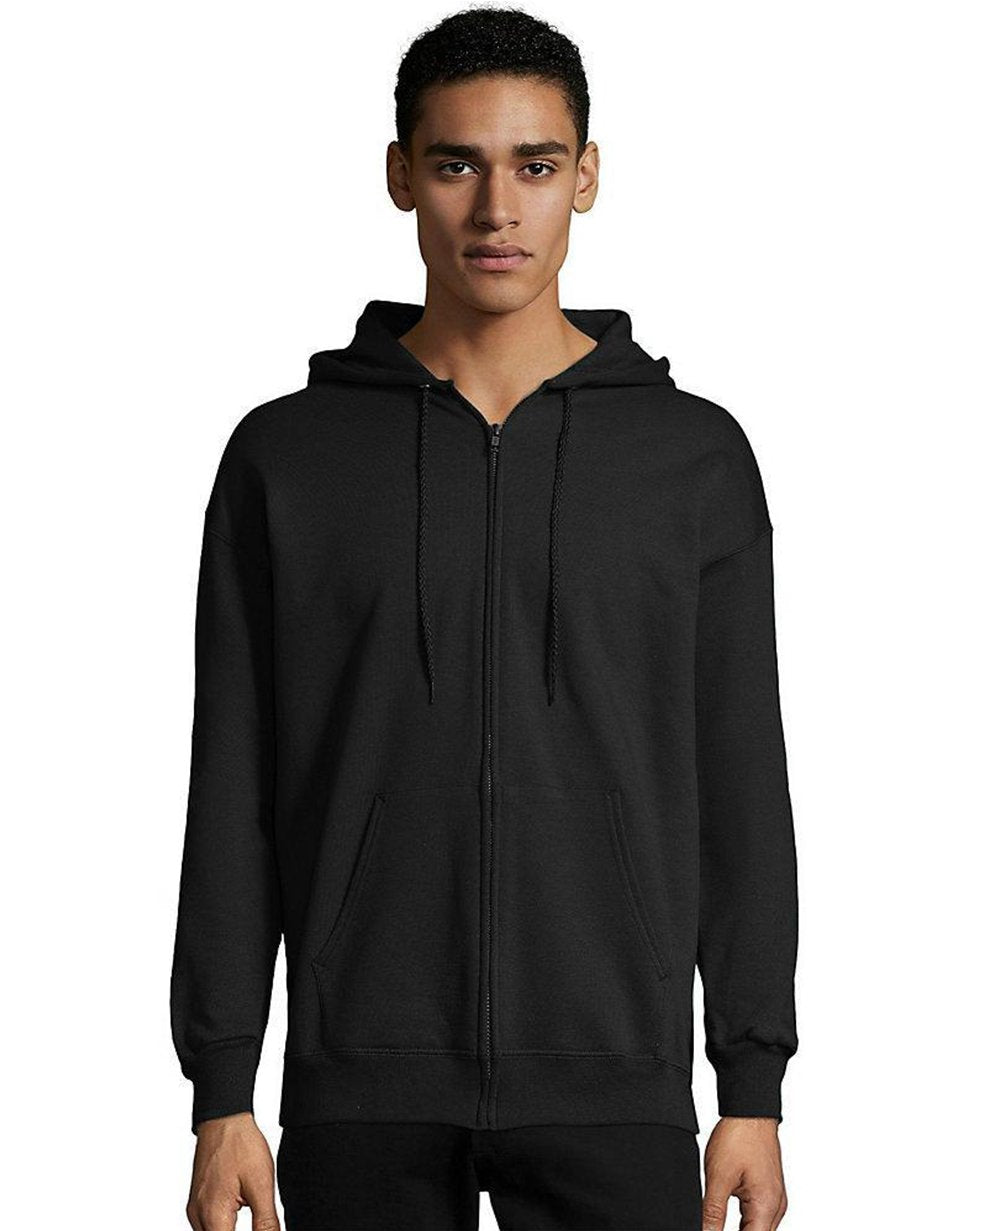 Zip-up Hoodie in Black